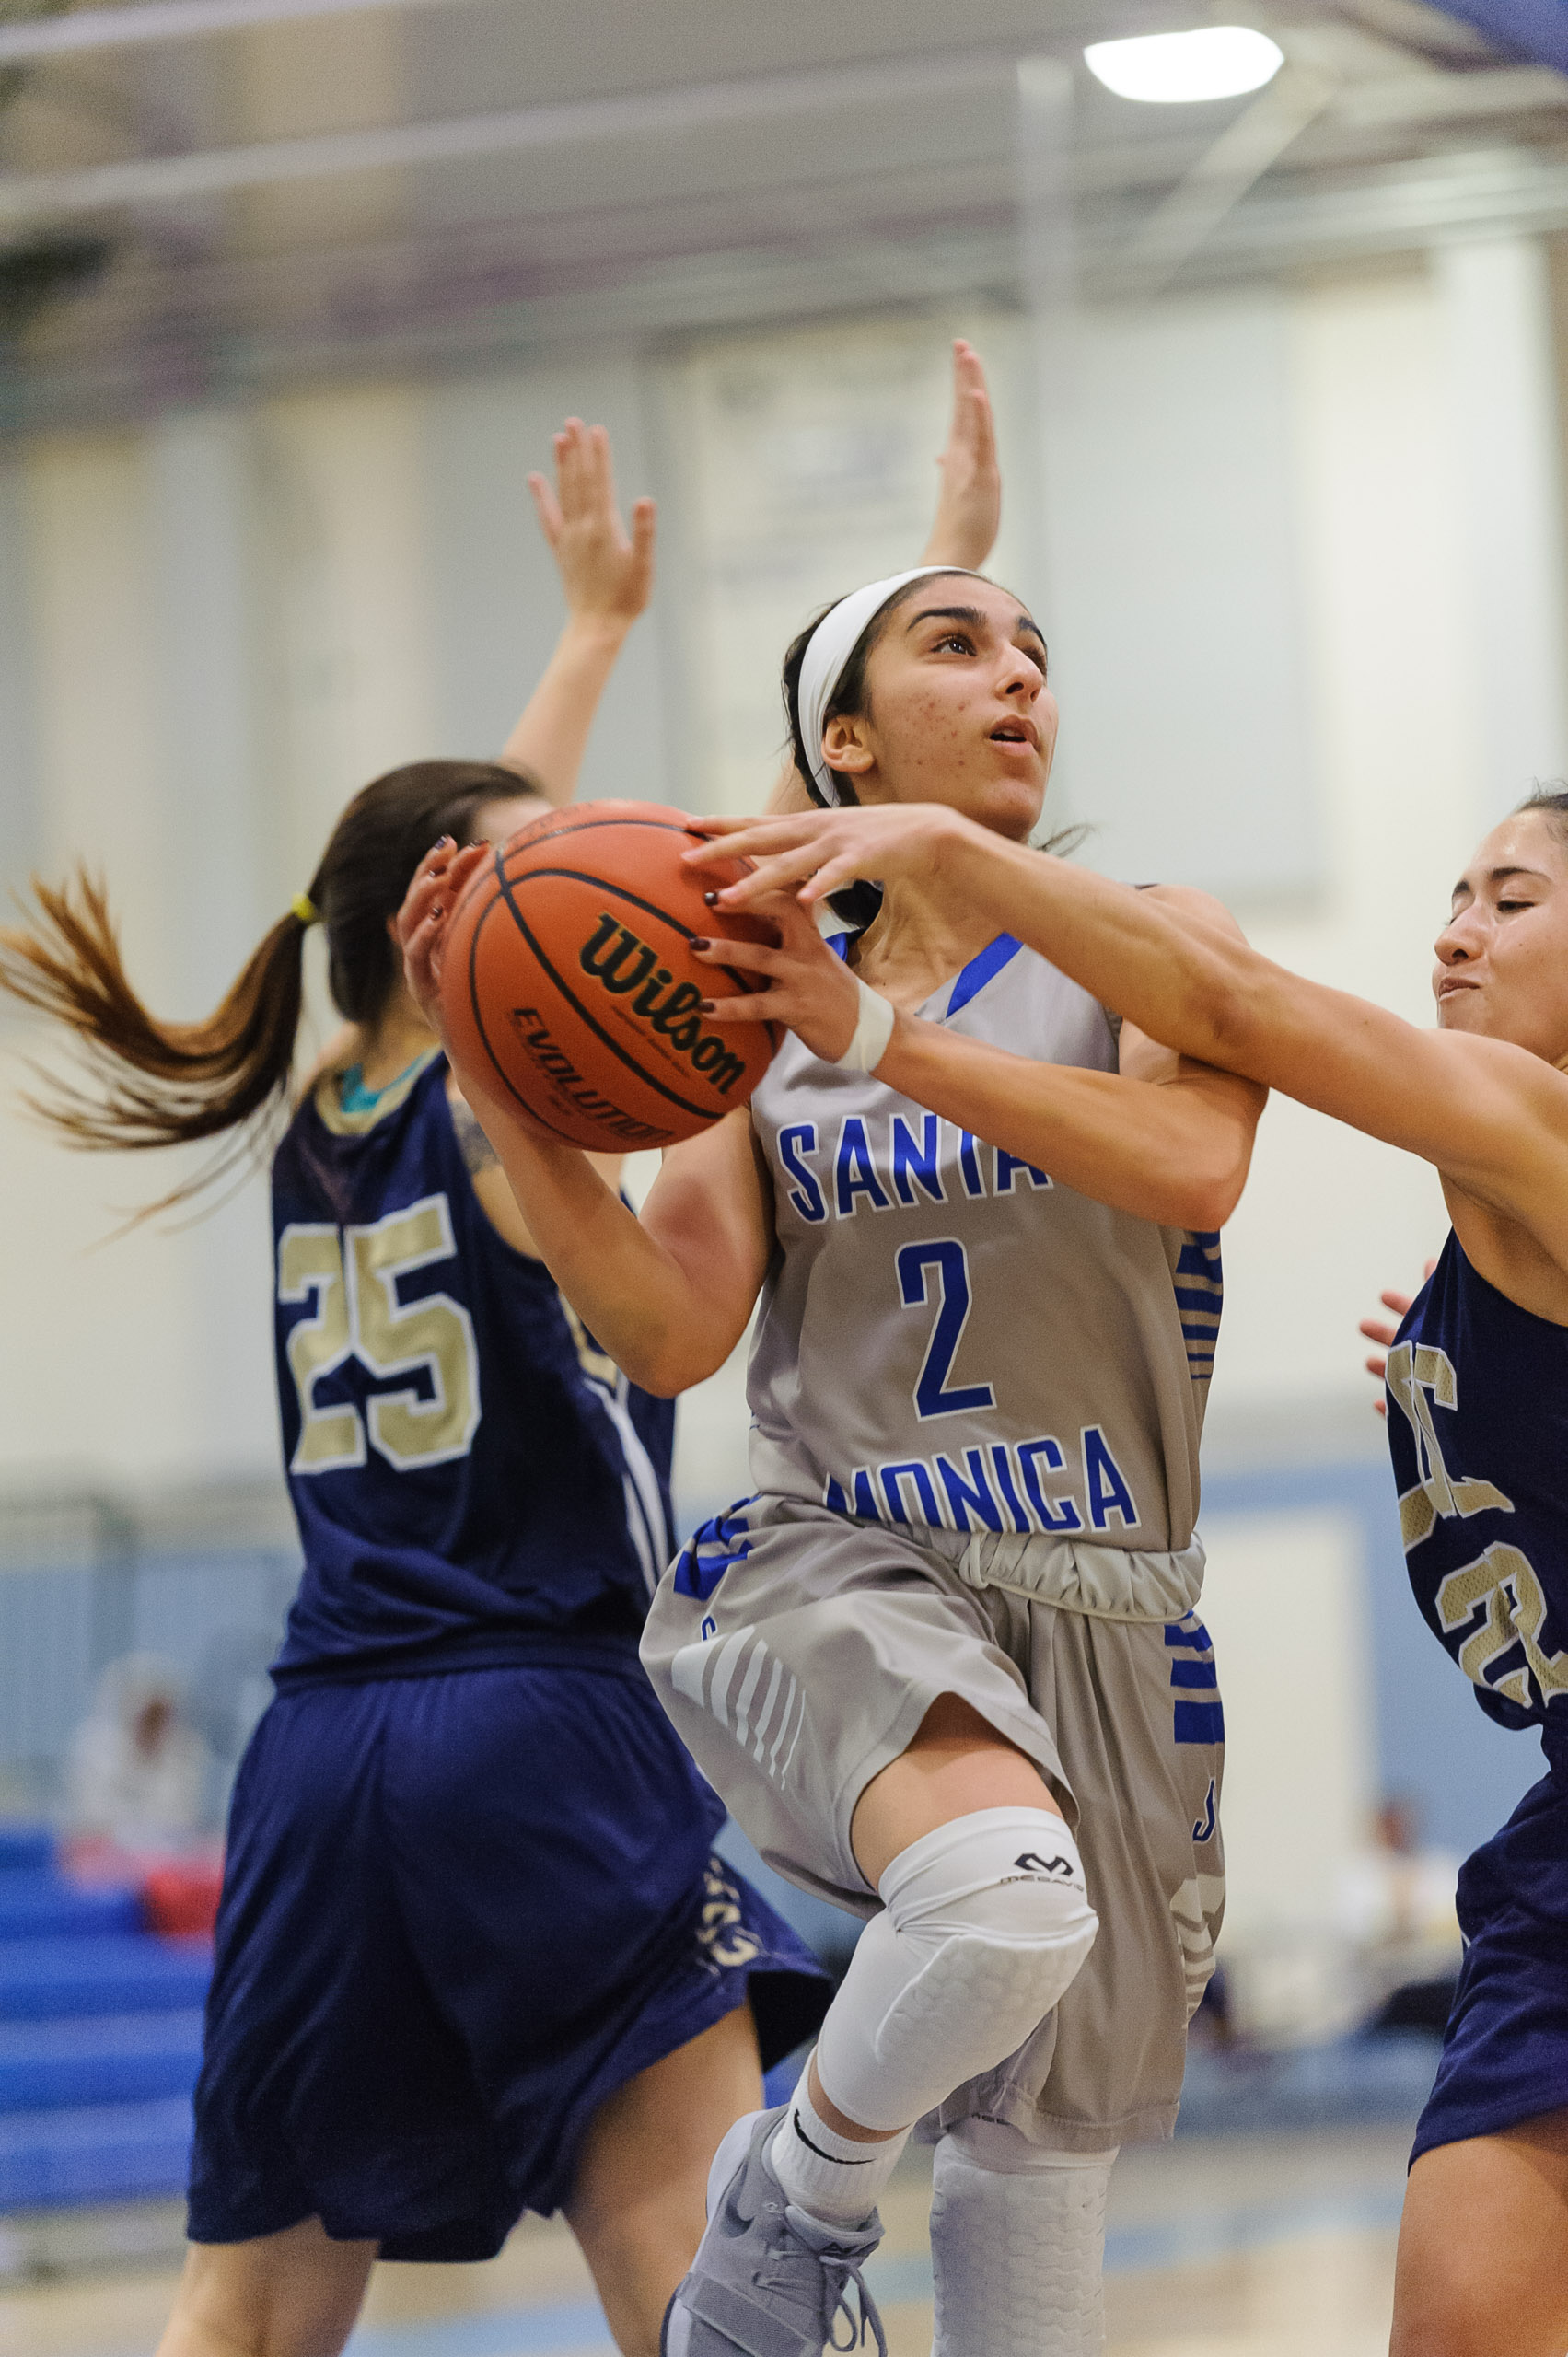 Guard Jessica Melamed (2,Middle) of Santa Monica College goes up for a layup attempt as Alexis Orellana (22,Right) of the College of the Canyons attempts to strip the ball from Melamed. The Santa Monica College Corsairs lose the game 108-70 to the College of the Canyons Cougars. The game was held at the SMC Pavilion at the Santa Monica College Main Campus in Santa Monica, Calif.. February 10, 2018. (Photo by: Justin Han/Corsair Staff)